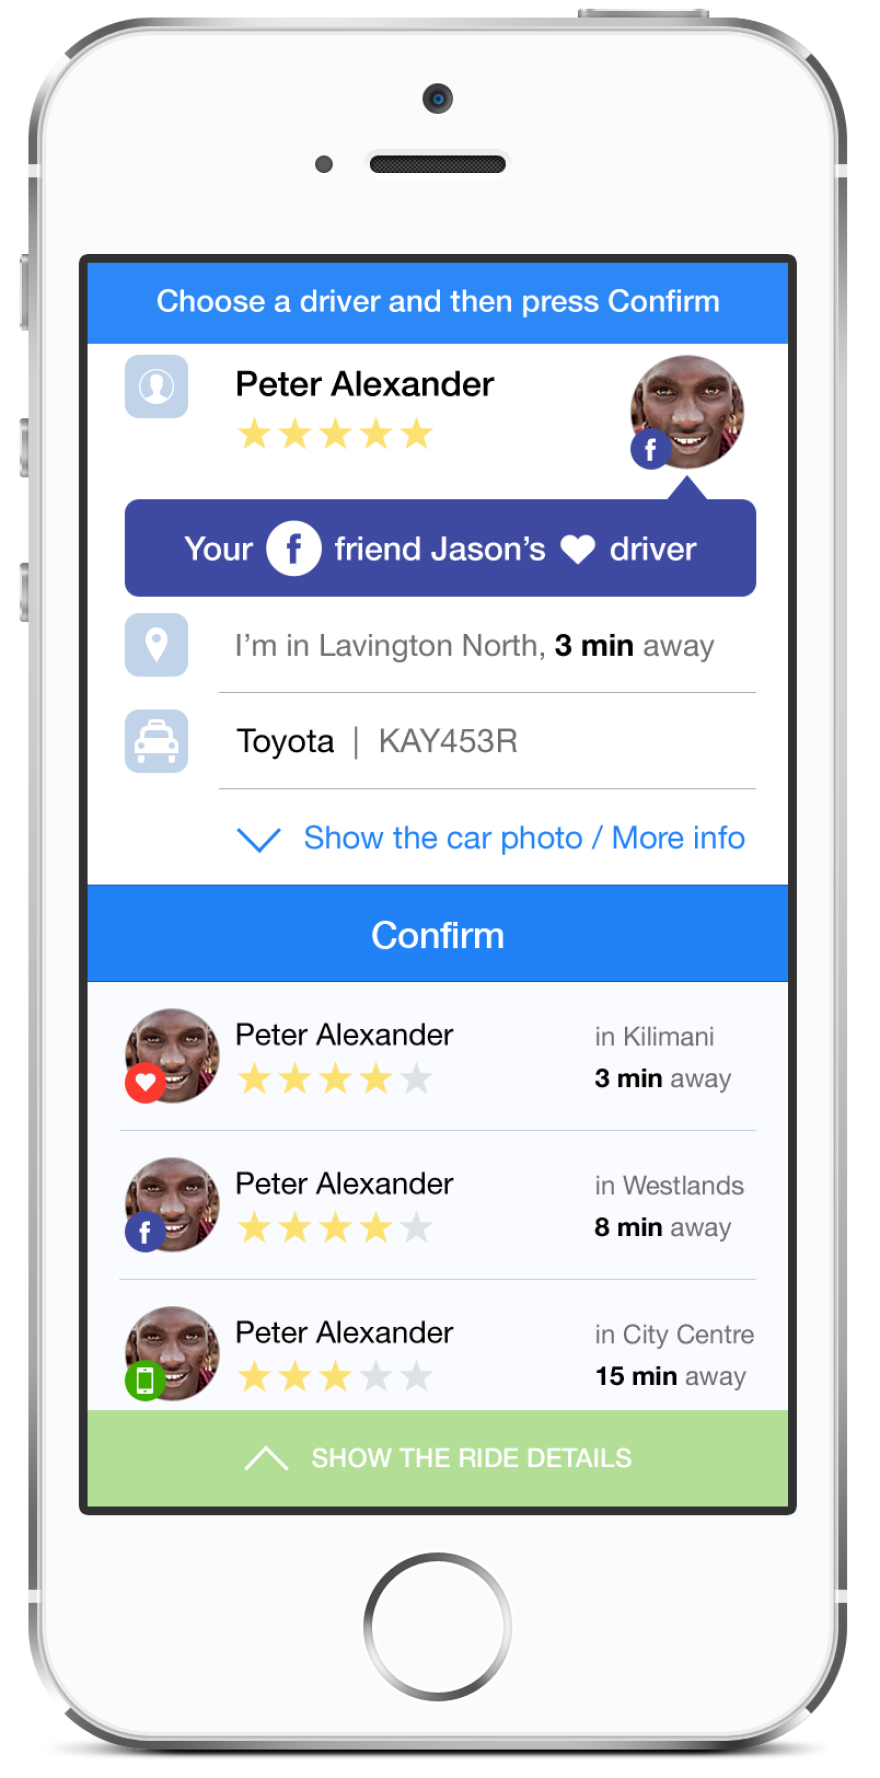 The Maramoja app assigns taxi drivers a trust score, by scouring your contacts and social media.